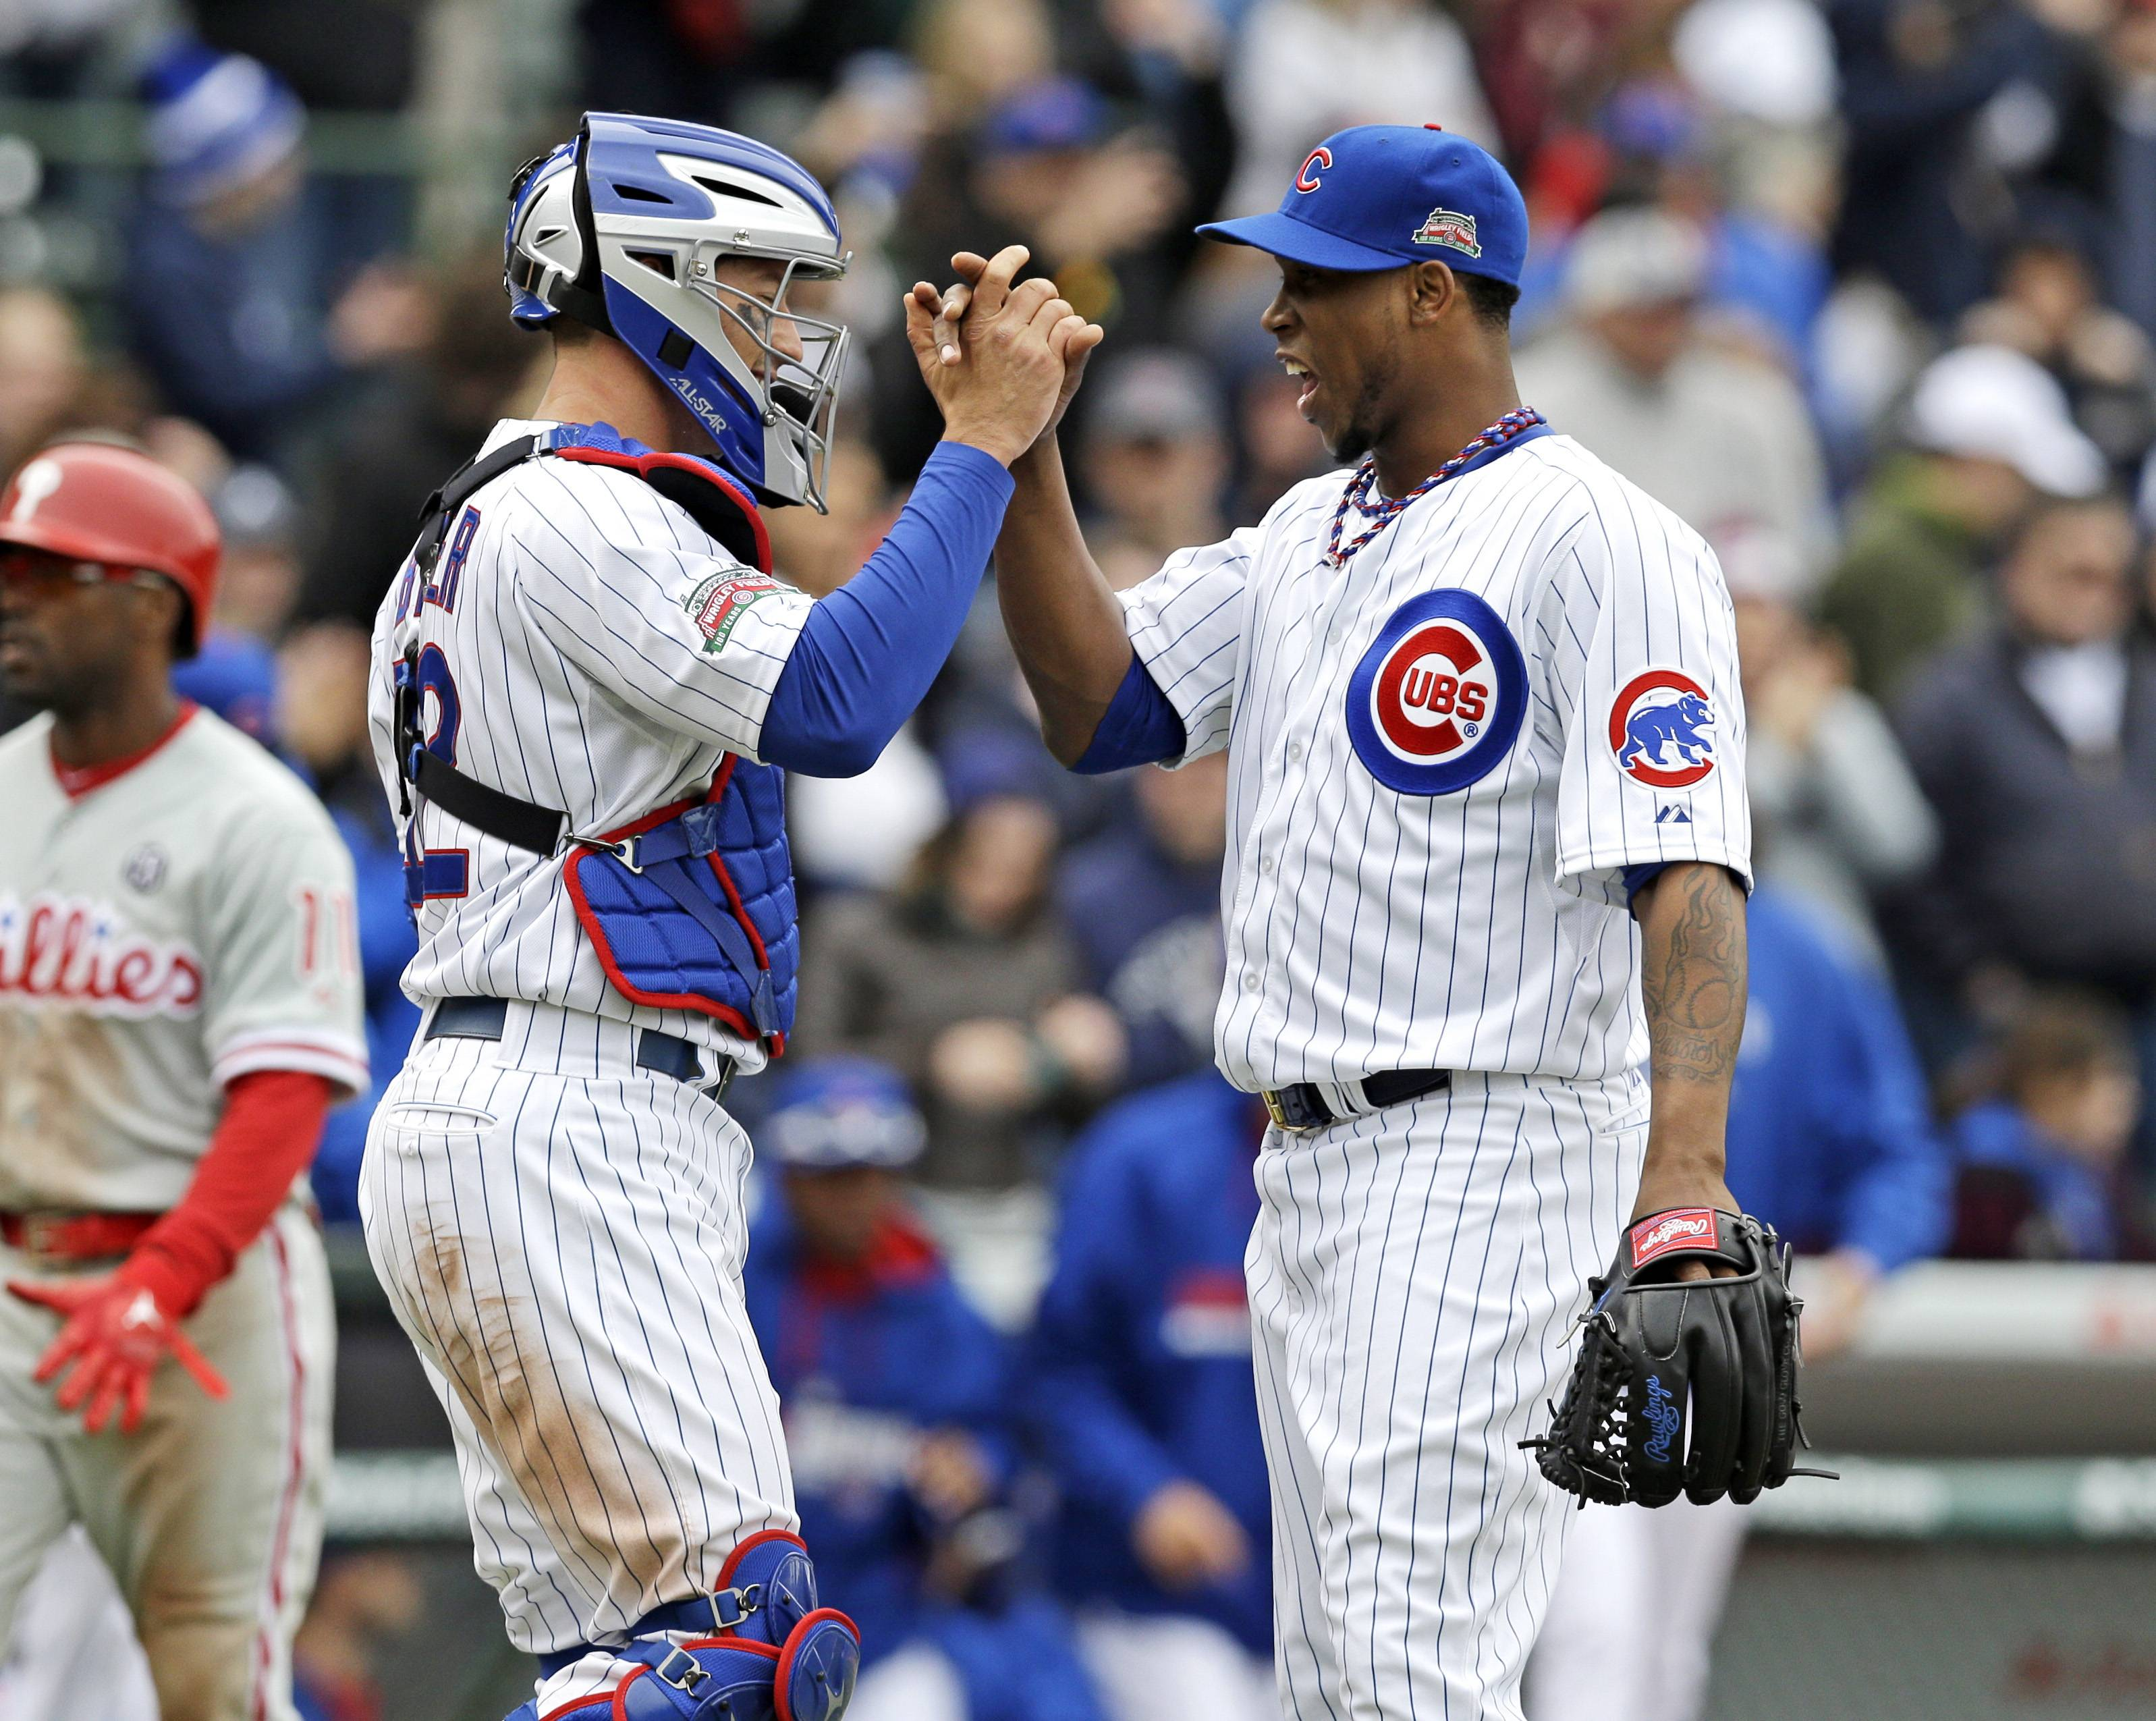 Cubs relief pitcher Pedro Strop, right, celebrates with catcher John Baker after the Cubs defeated the Philadelphia Phillies 8-3 in a baseball game in Chicago, Sunday, April 6, 2014.